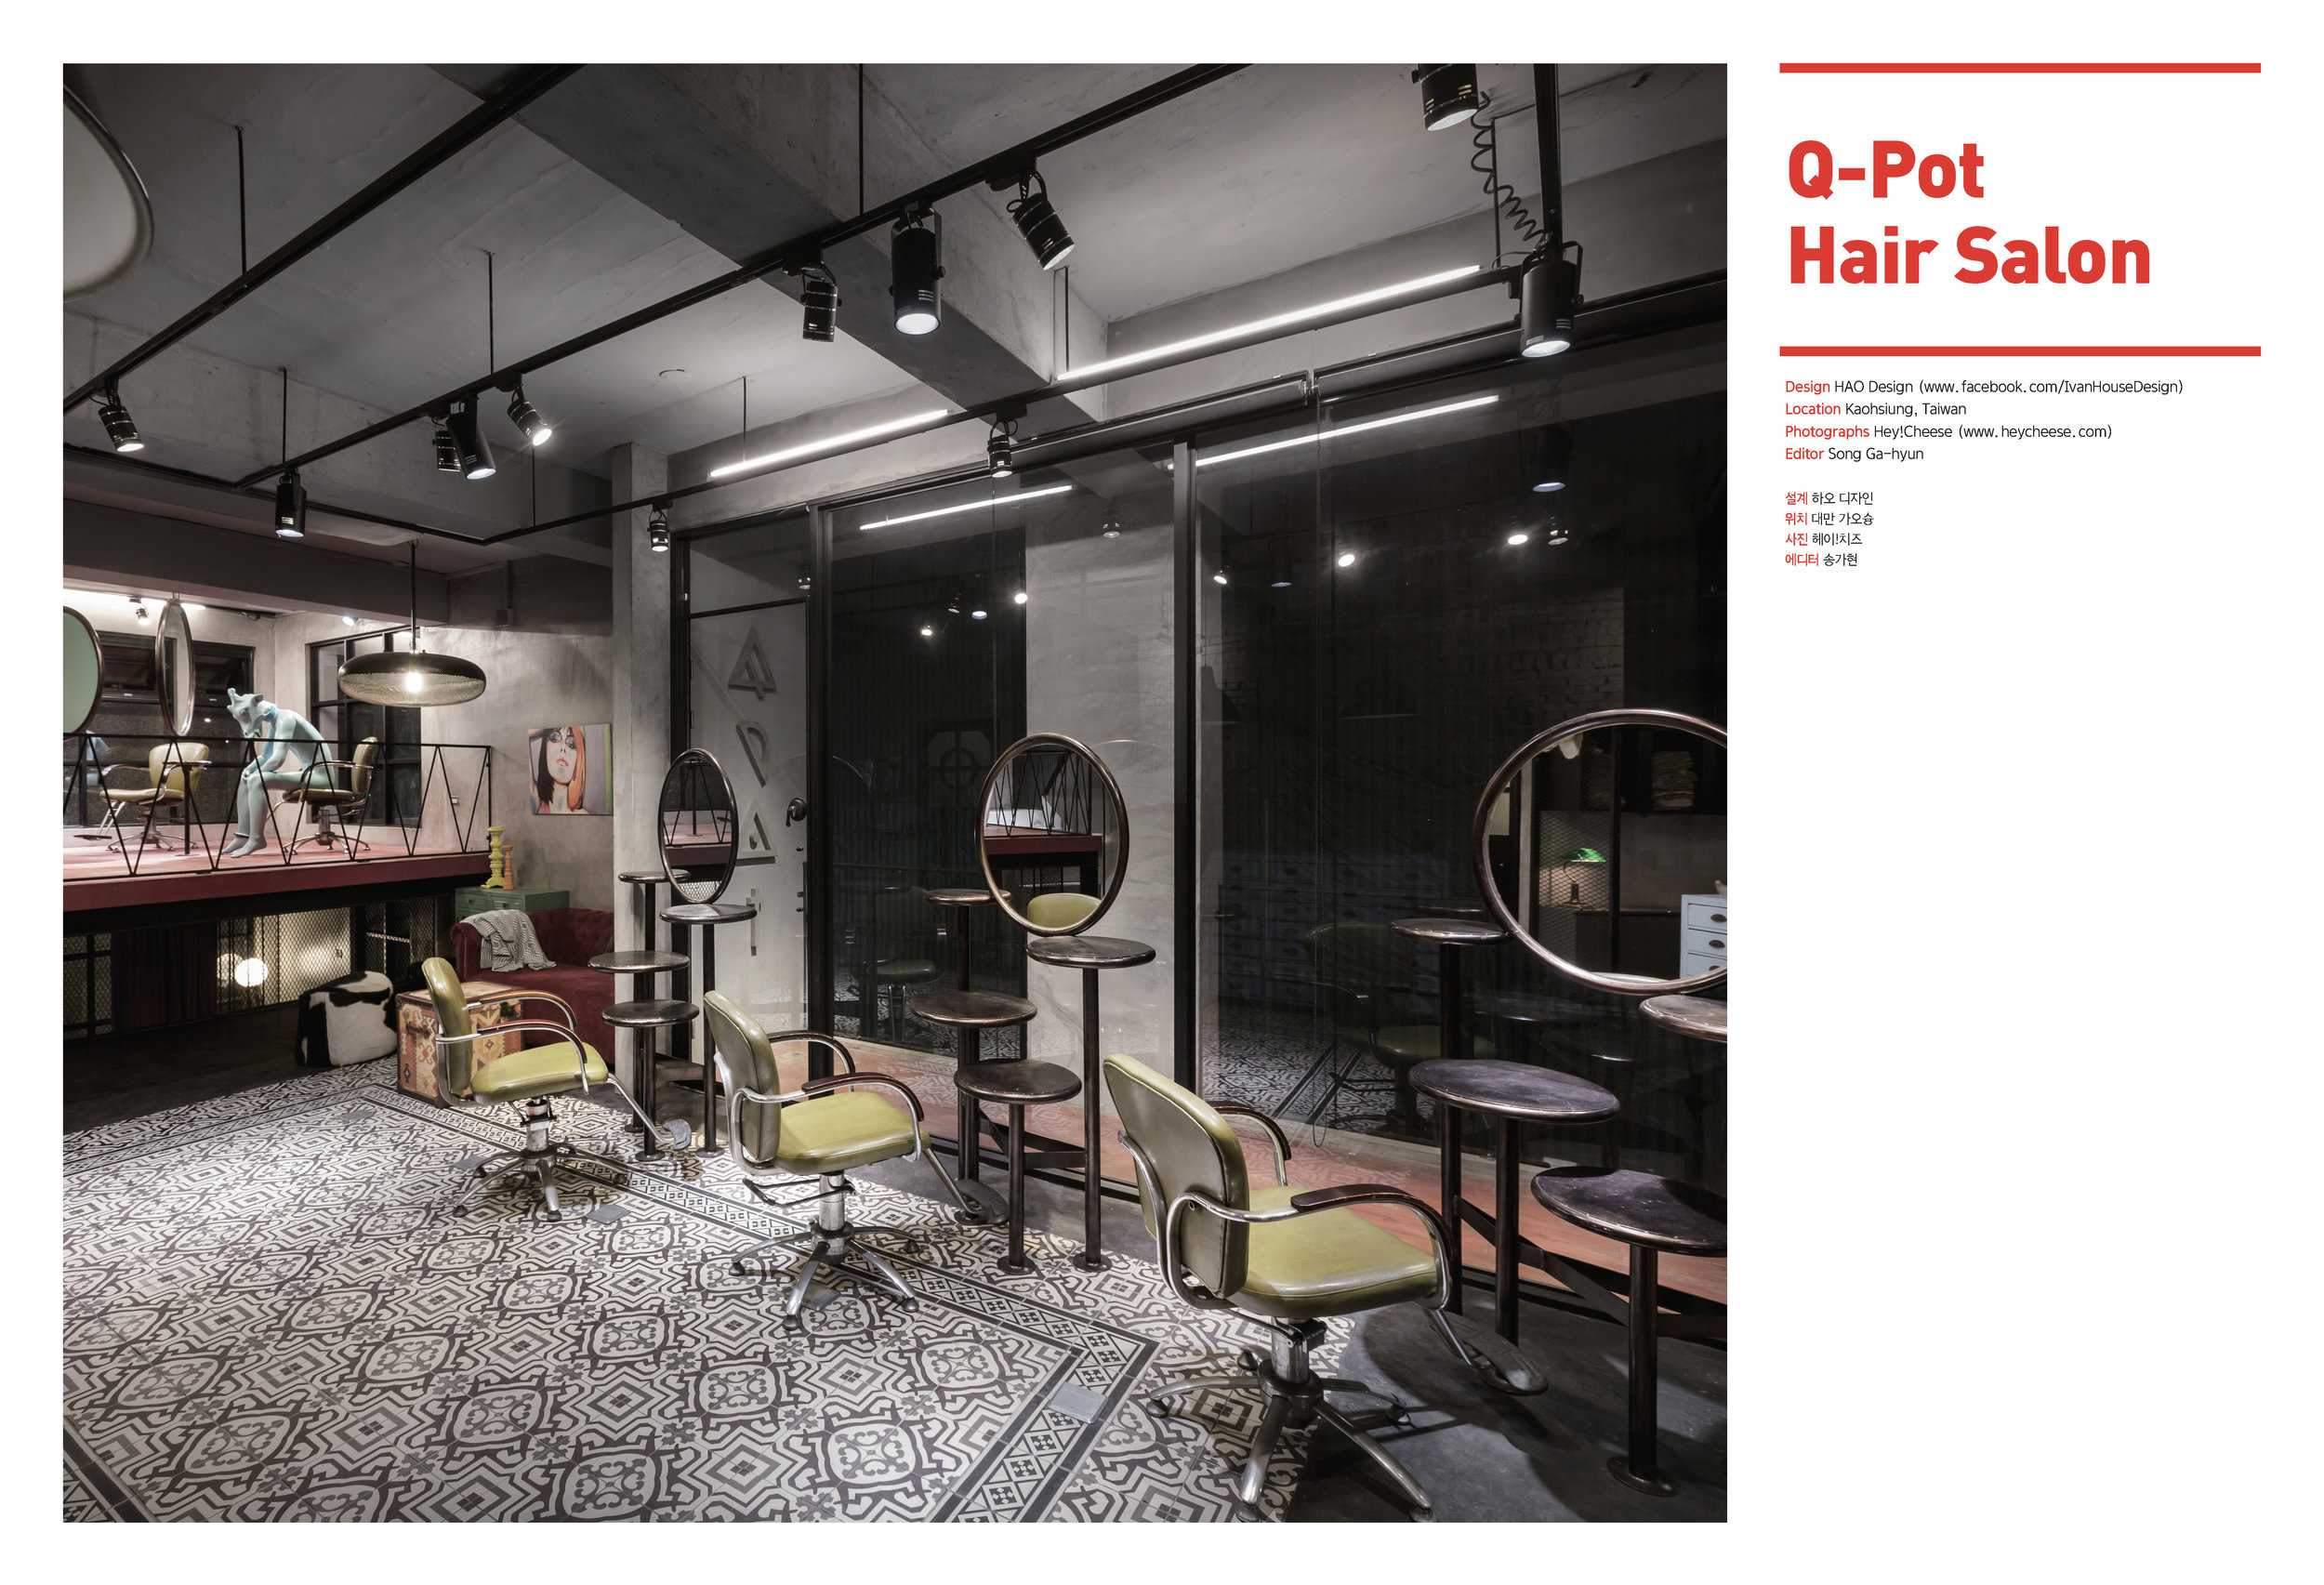 096-103p (테마) Q-Pot Hair Salon_頁面_1.jpg